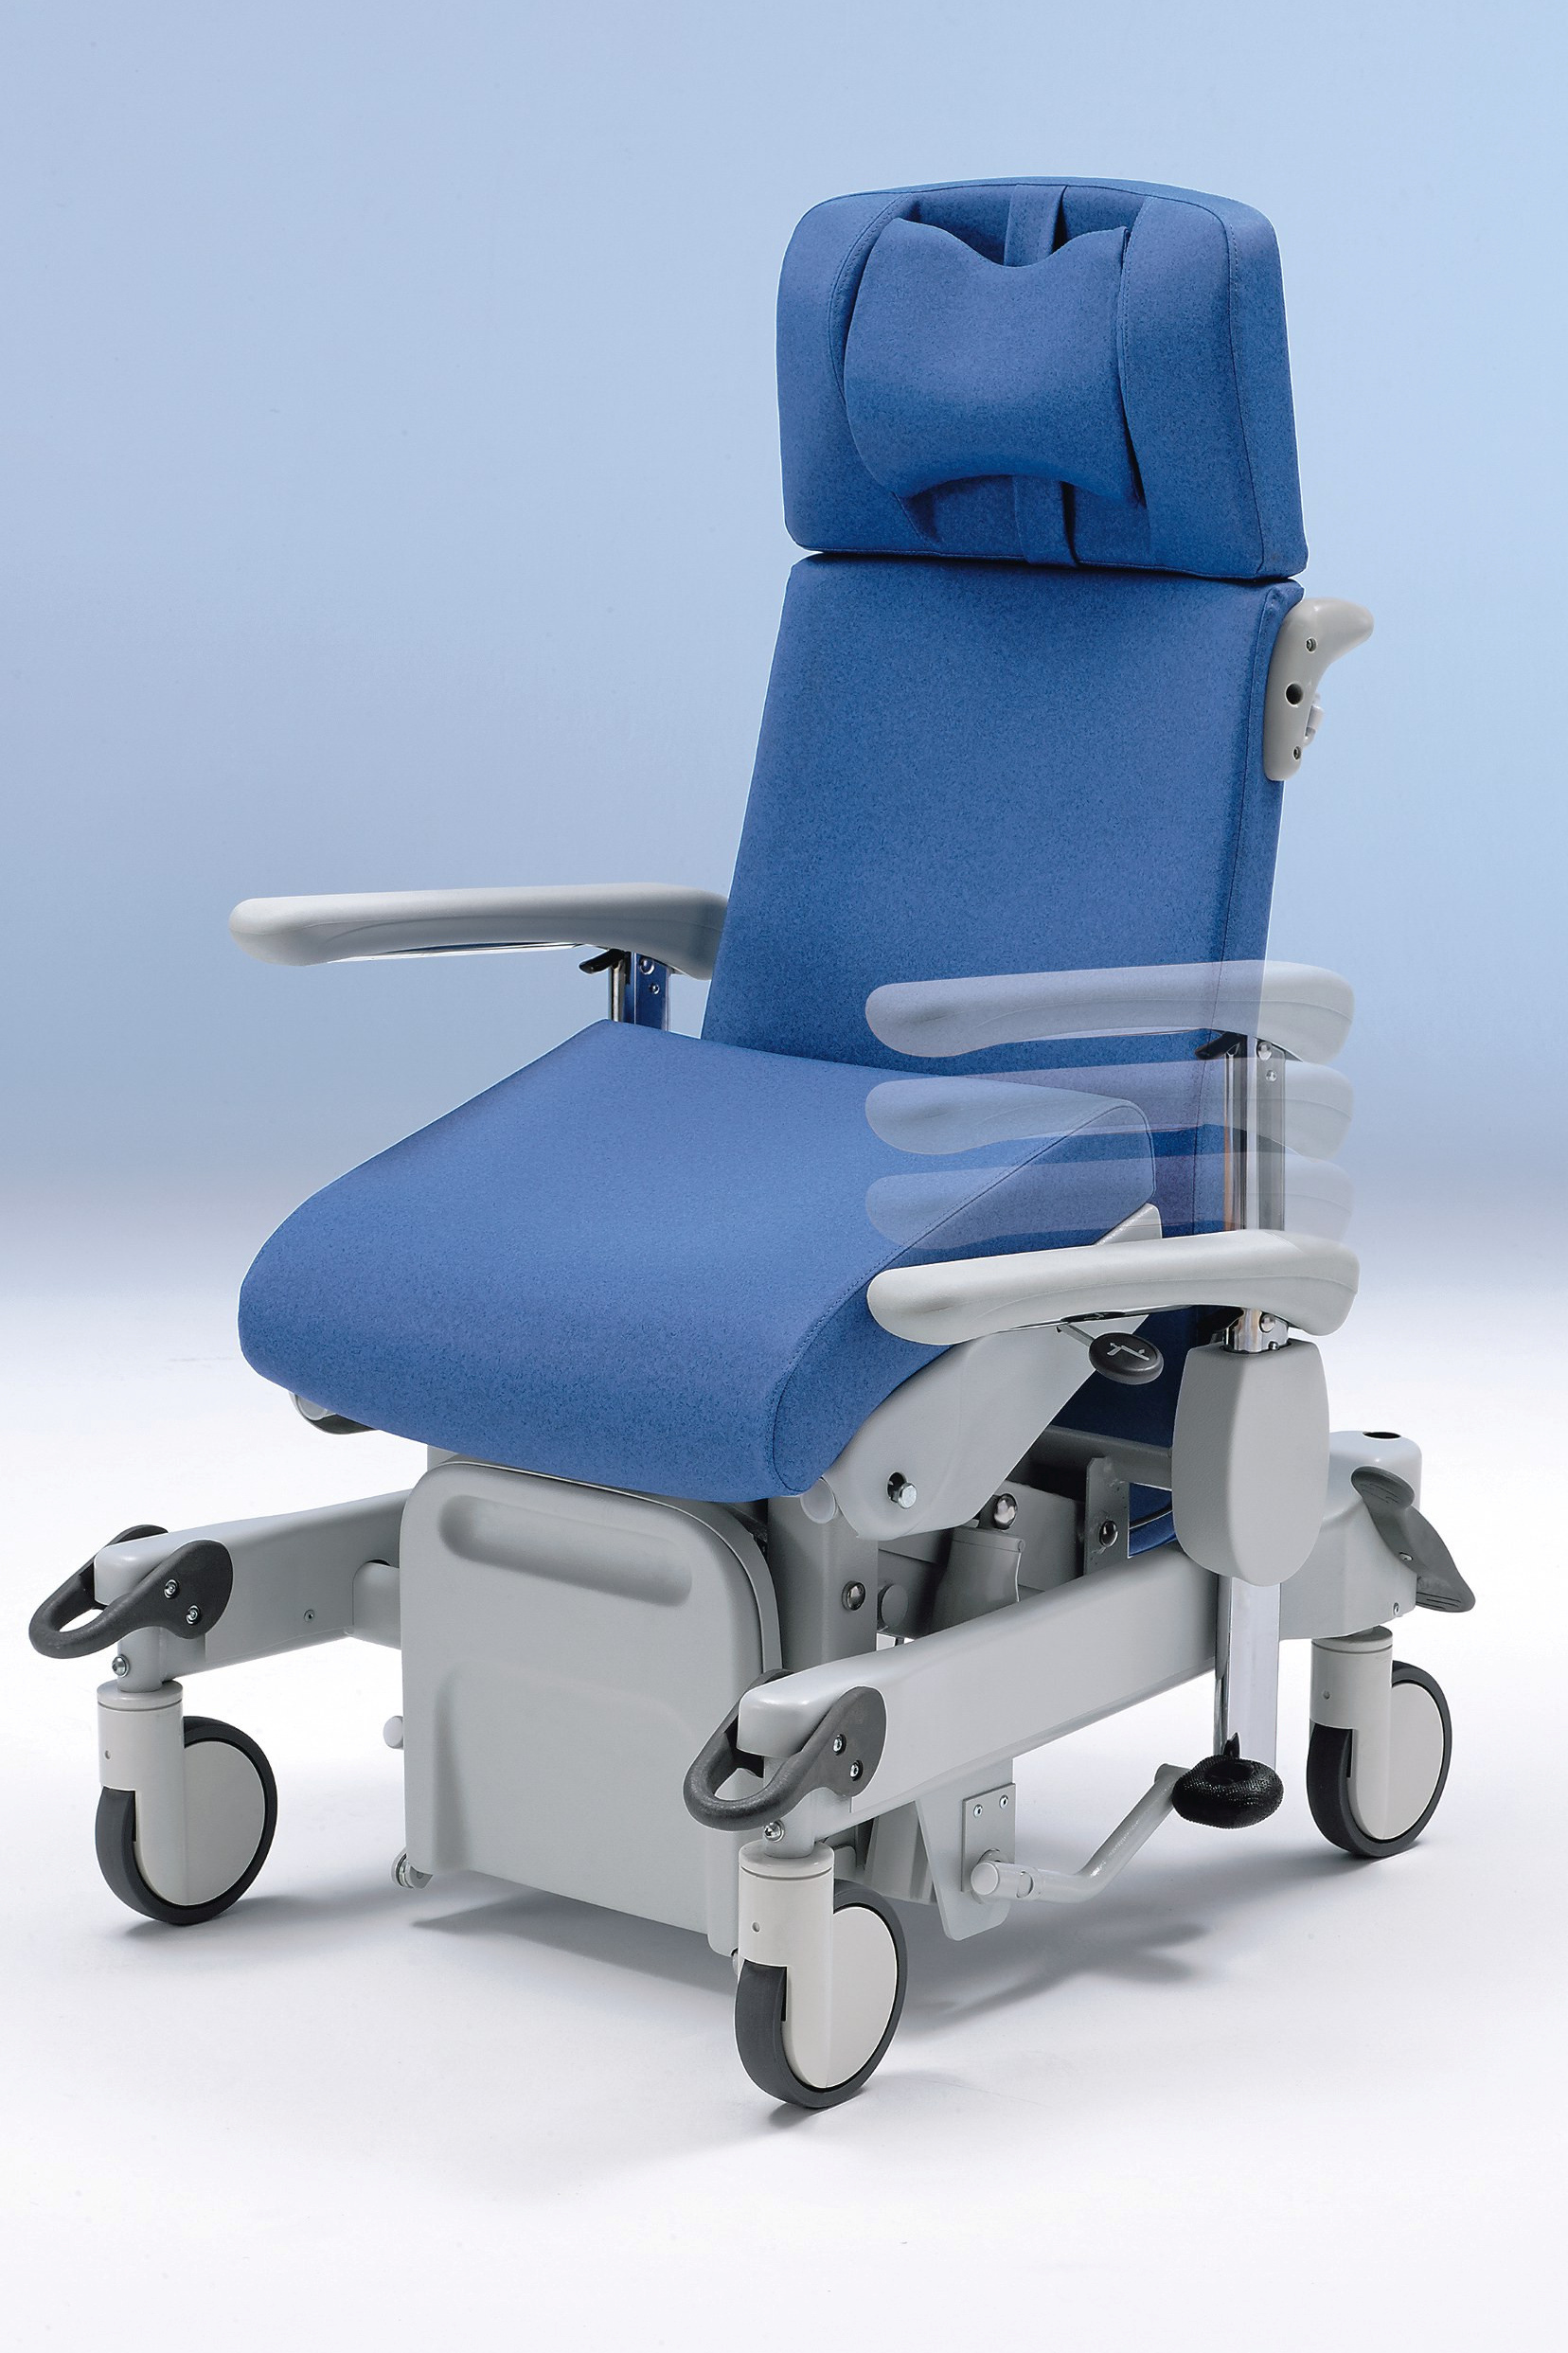 6-stage armrest height adjustment on the Ravello transport chair